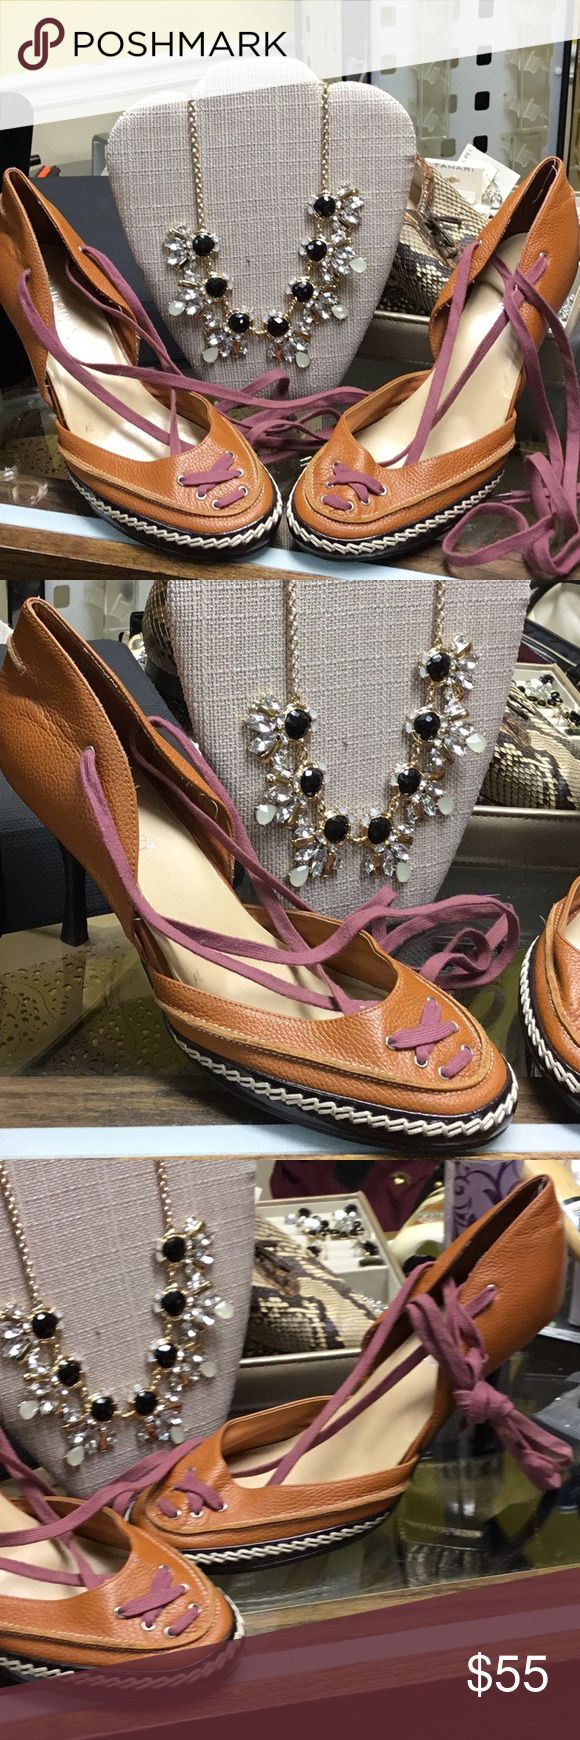 Nice Colin Stuart leather string ups Like new Leather string ups ! In great condition. Colin Stuart Shoes Espadrilles